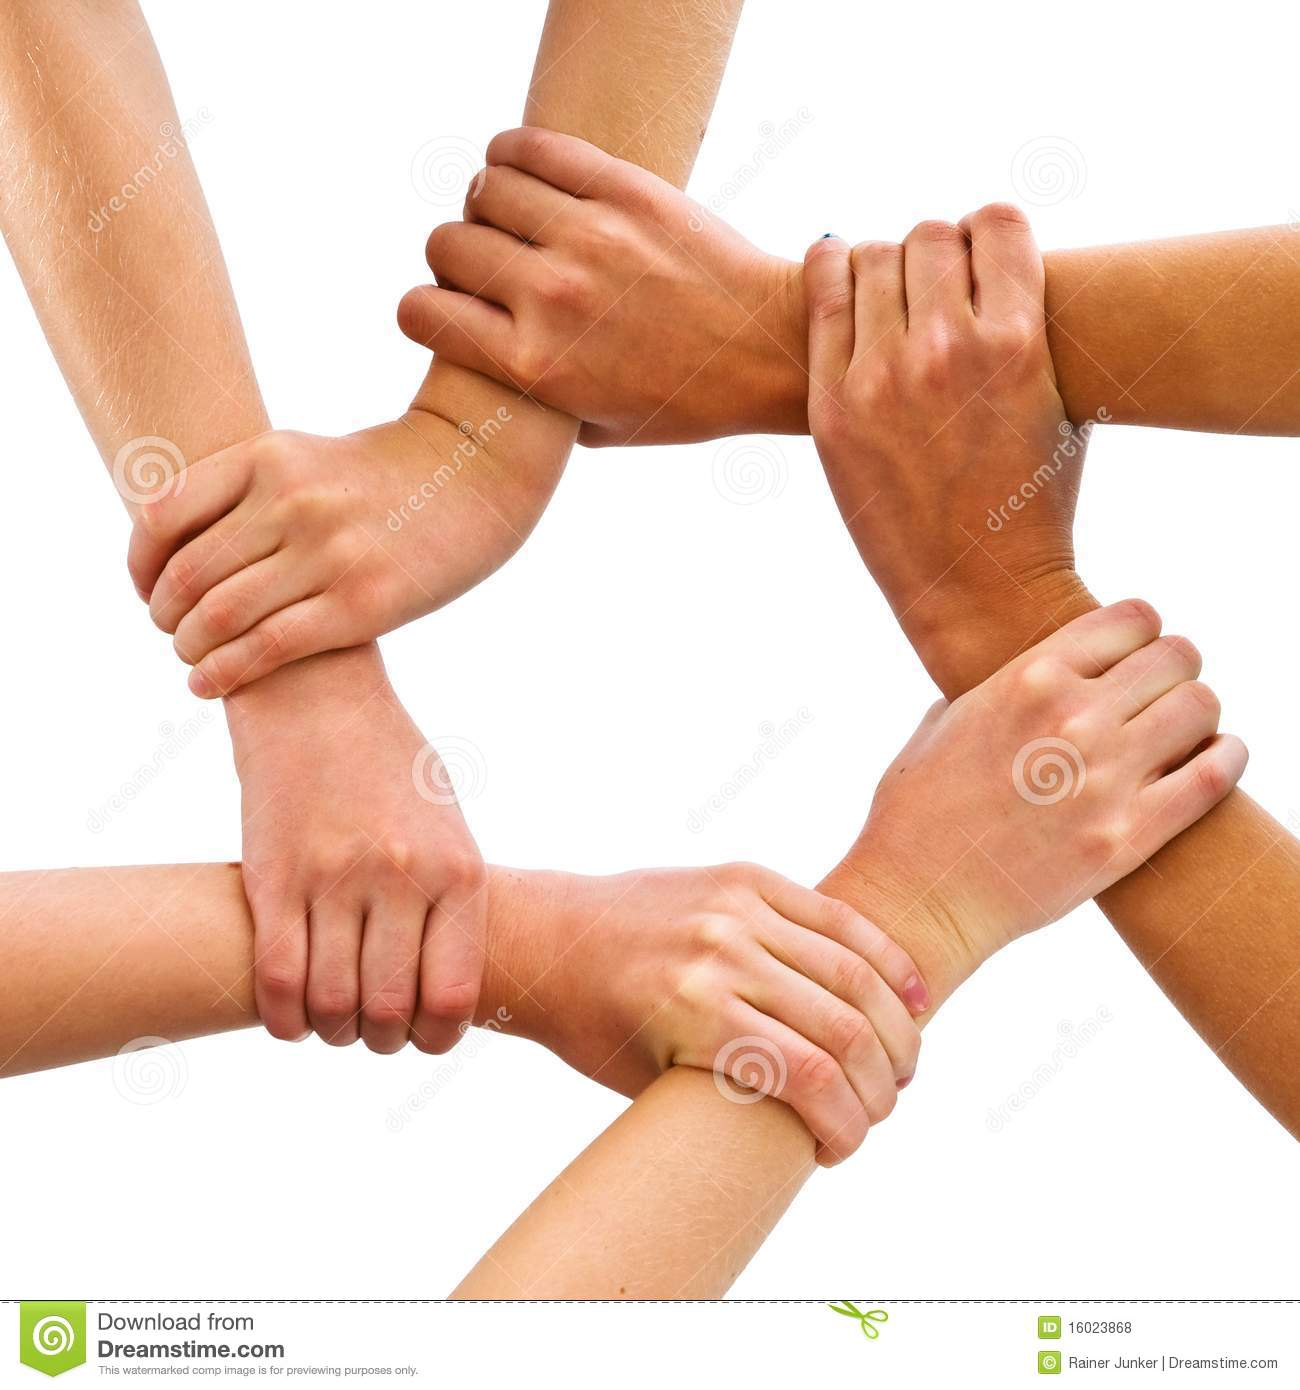 The picture shows three persons hands and arms together.